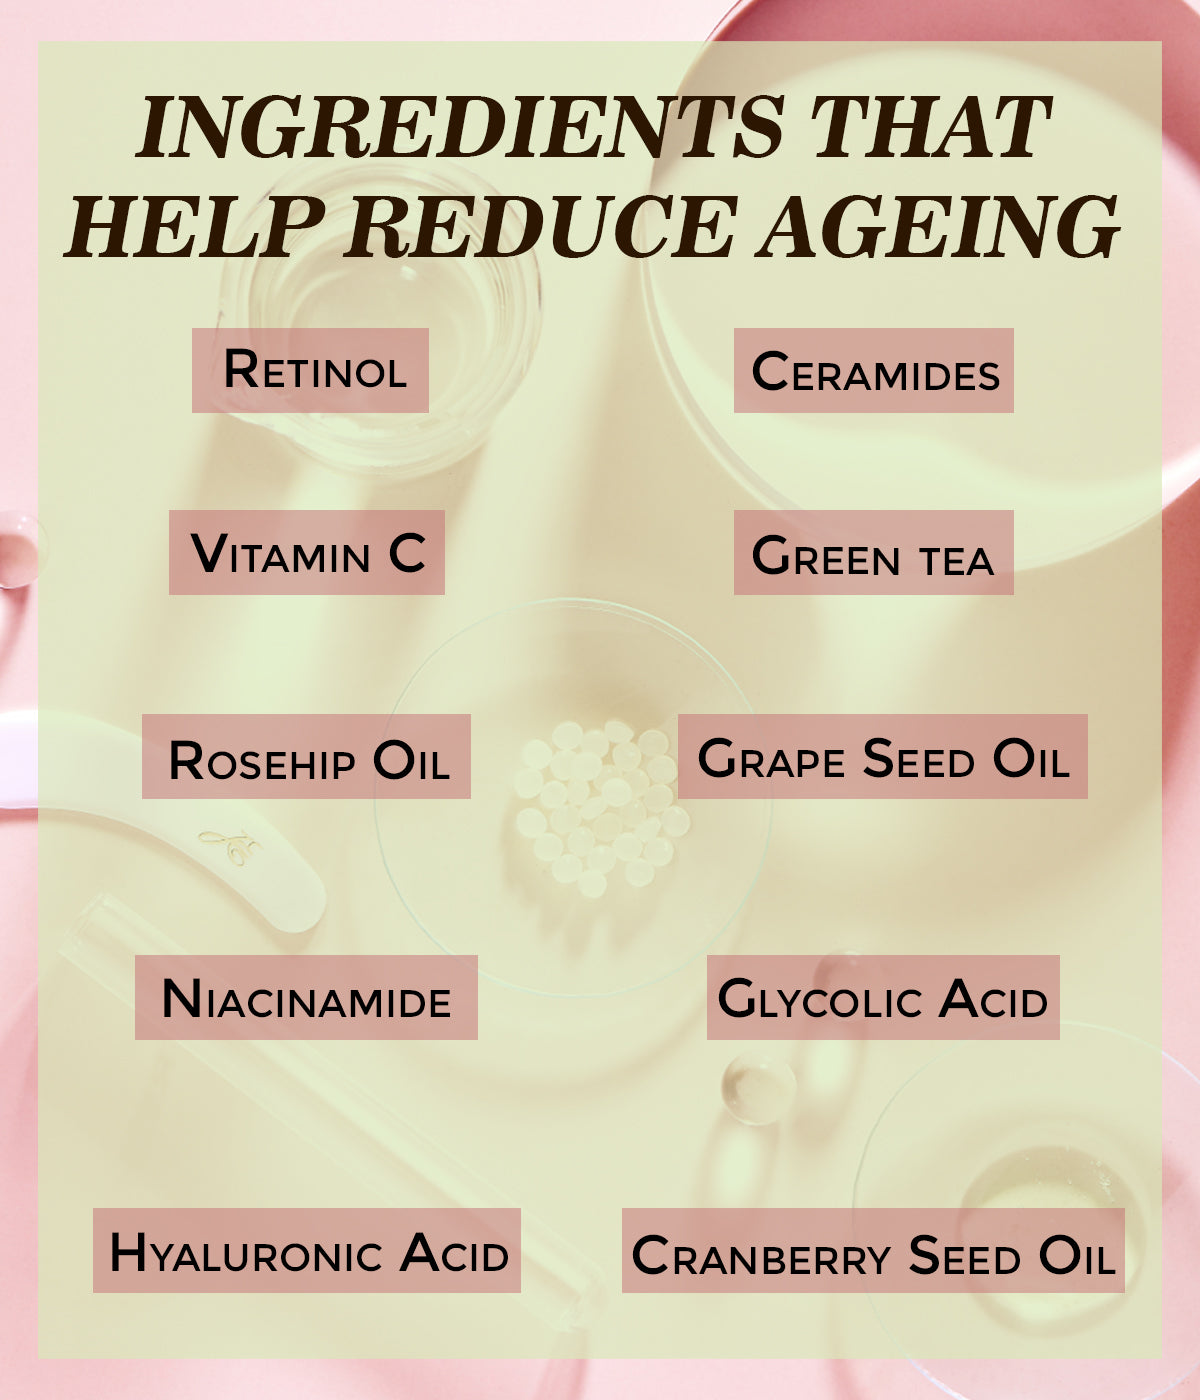 This is an image of ingredients that help reduce ageing on www.sublimelife.in